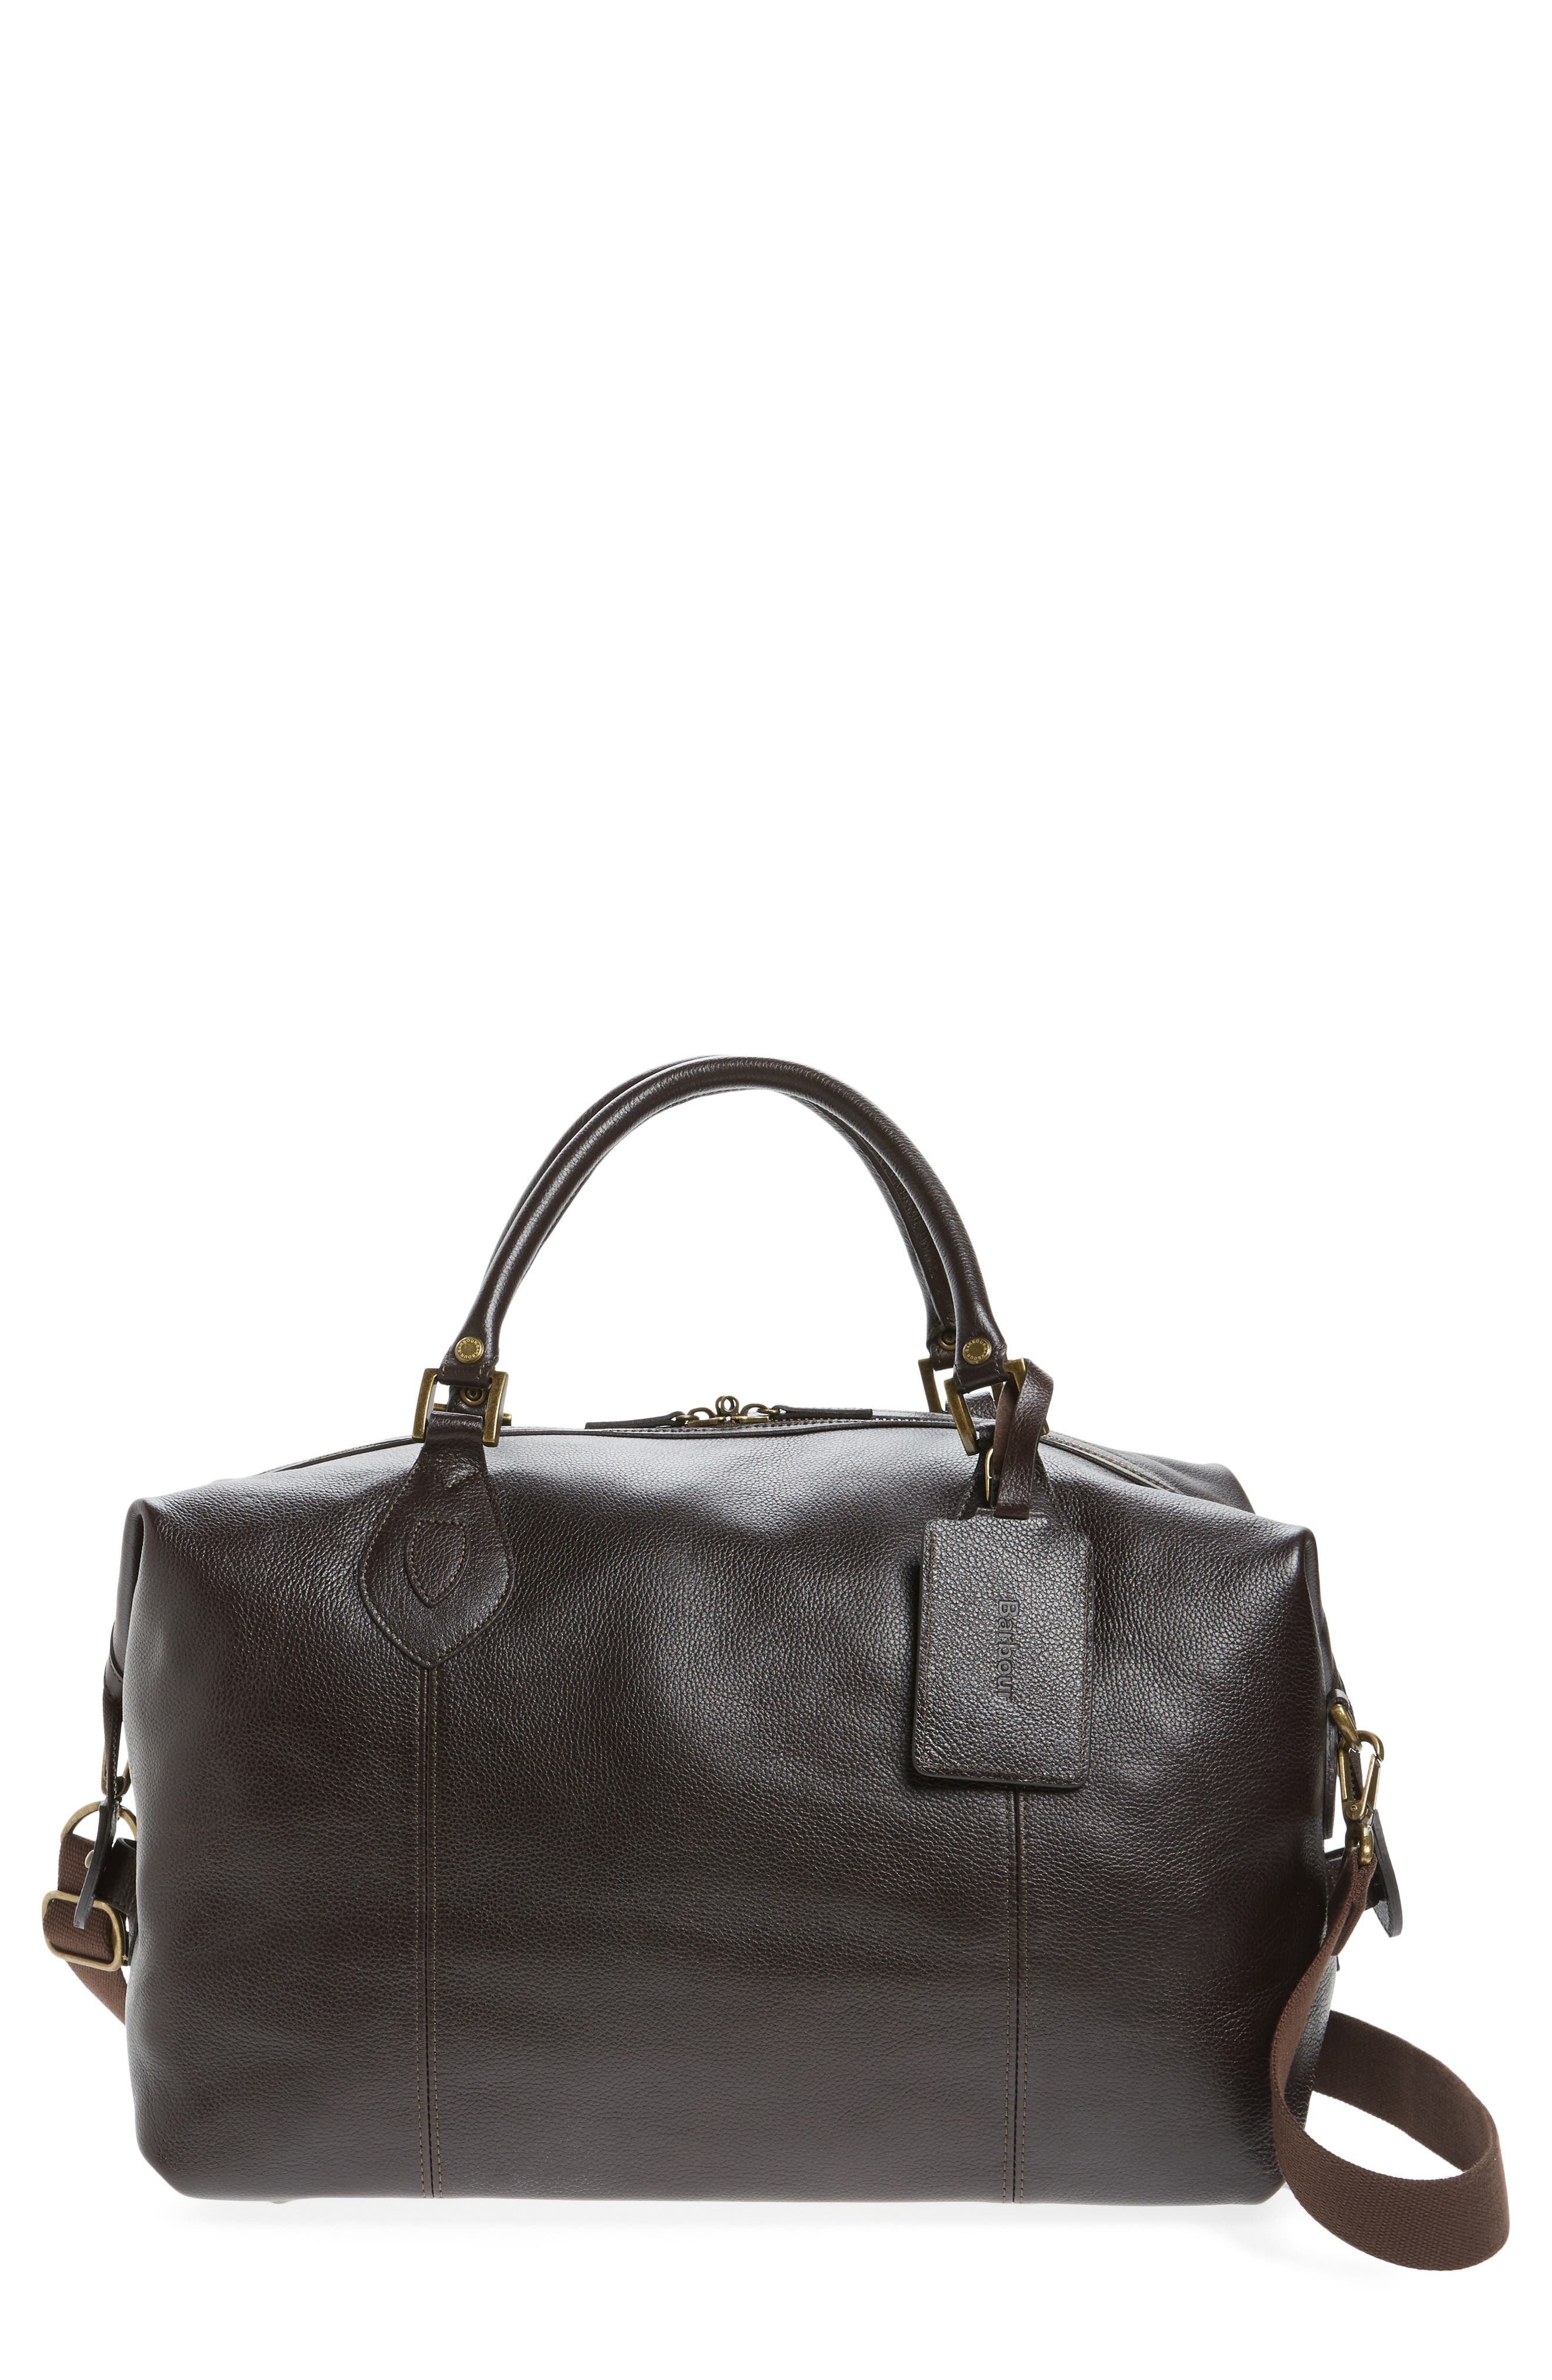 Leather Travel Bag,                             Main thumbnail 1, color,                             Chocolate